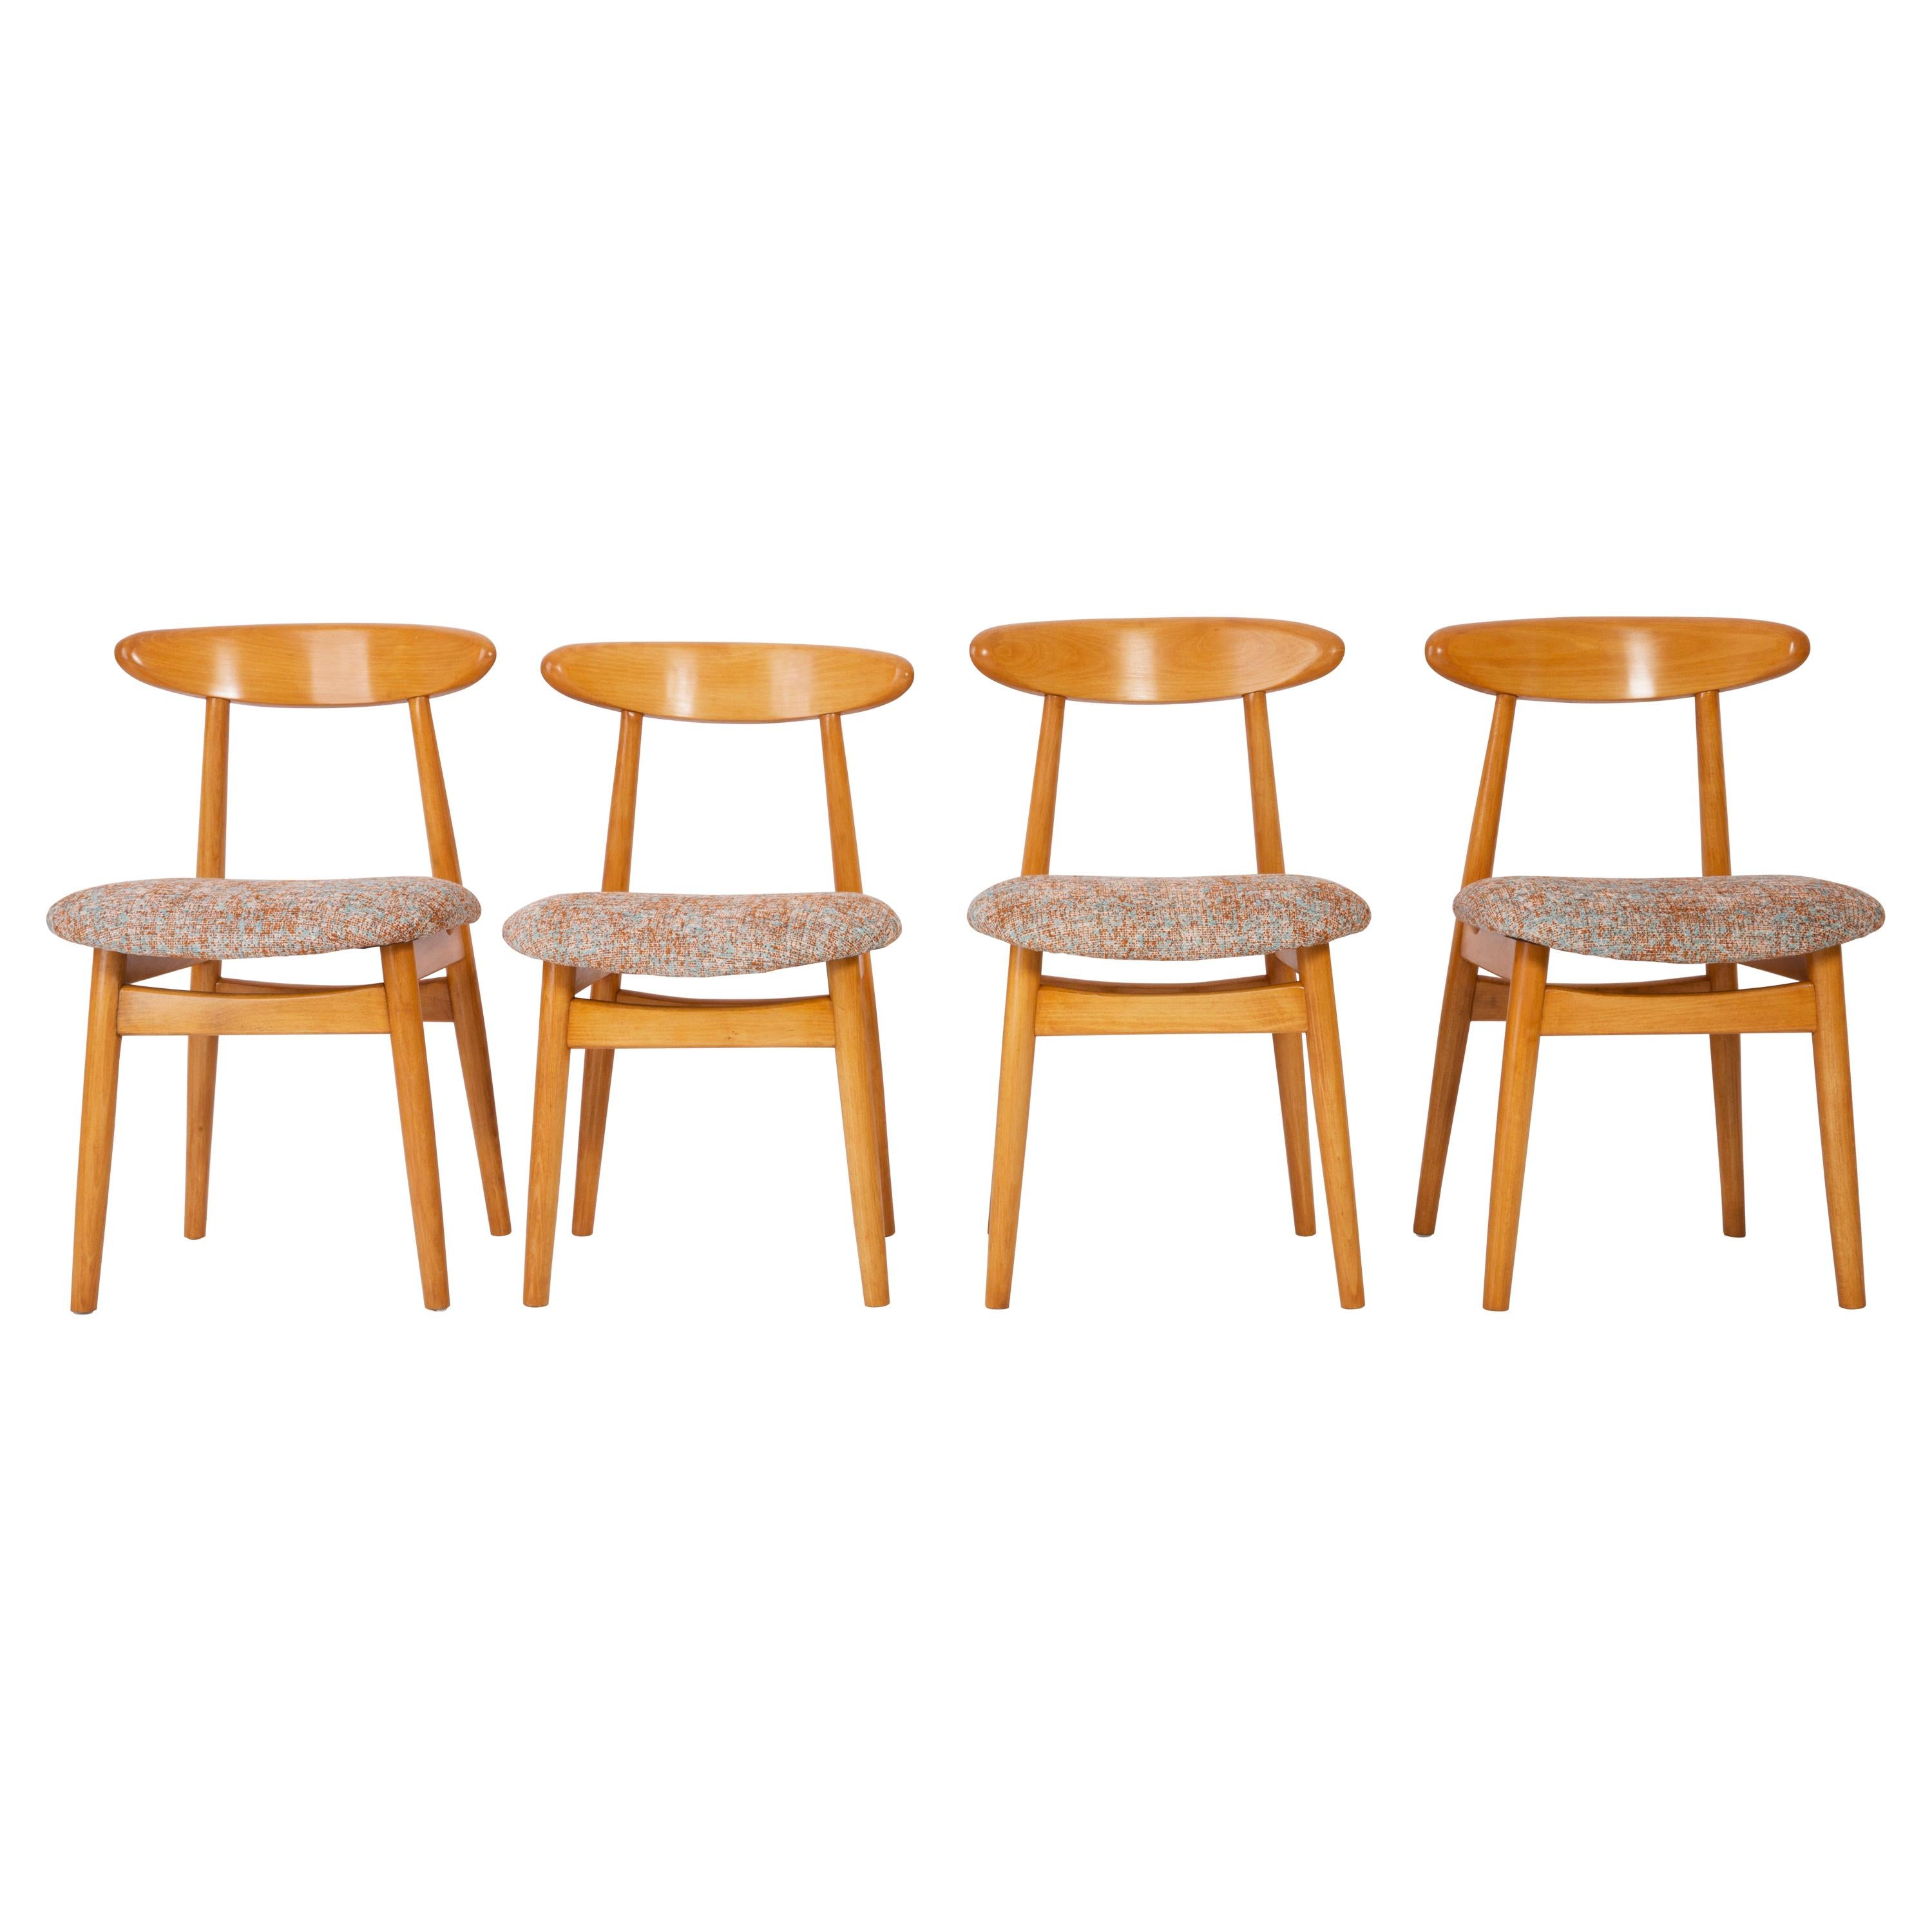 Four Midcentury Black Pixel Dining Chairs, 1960s